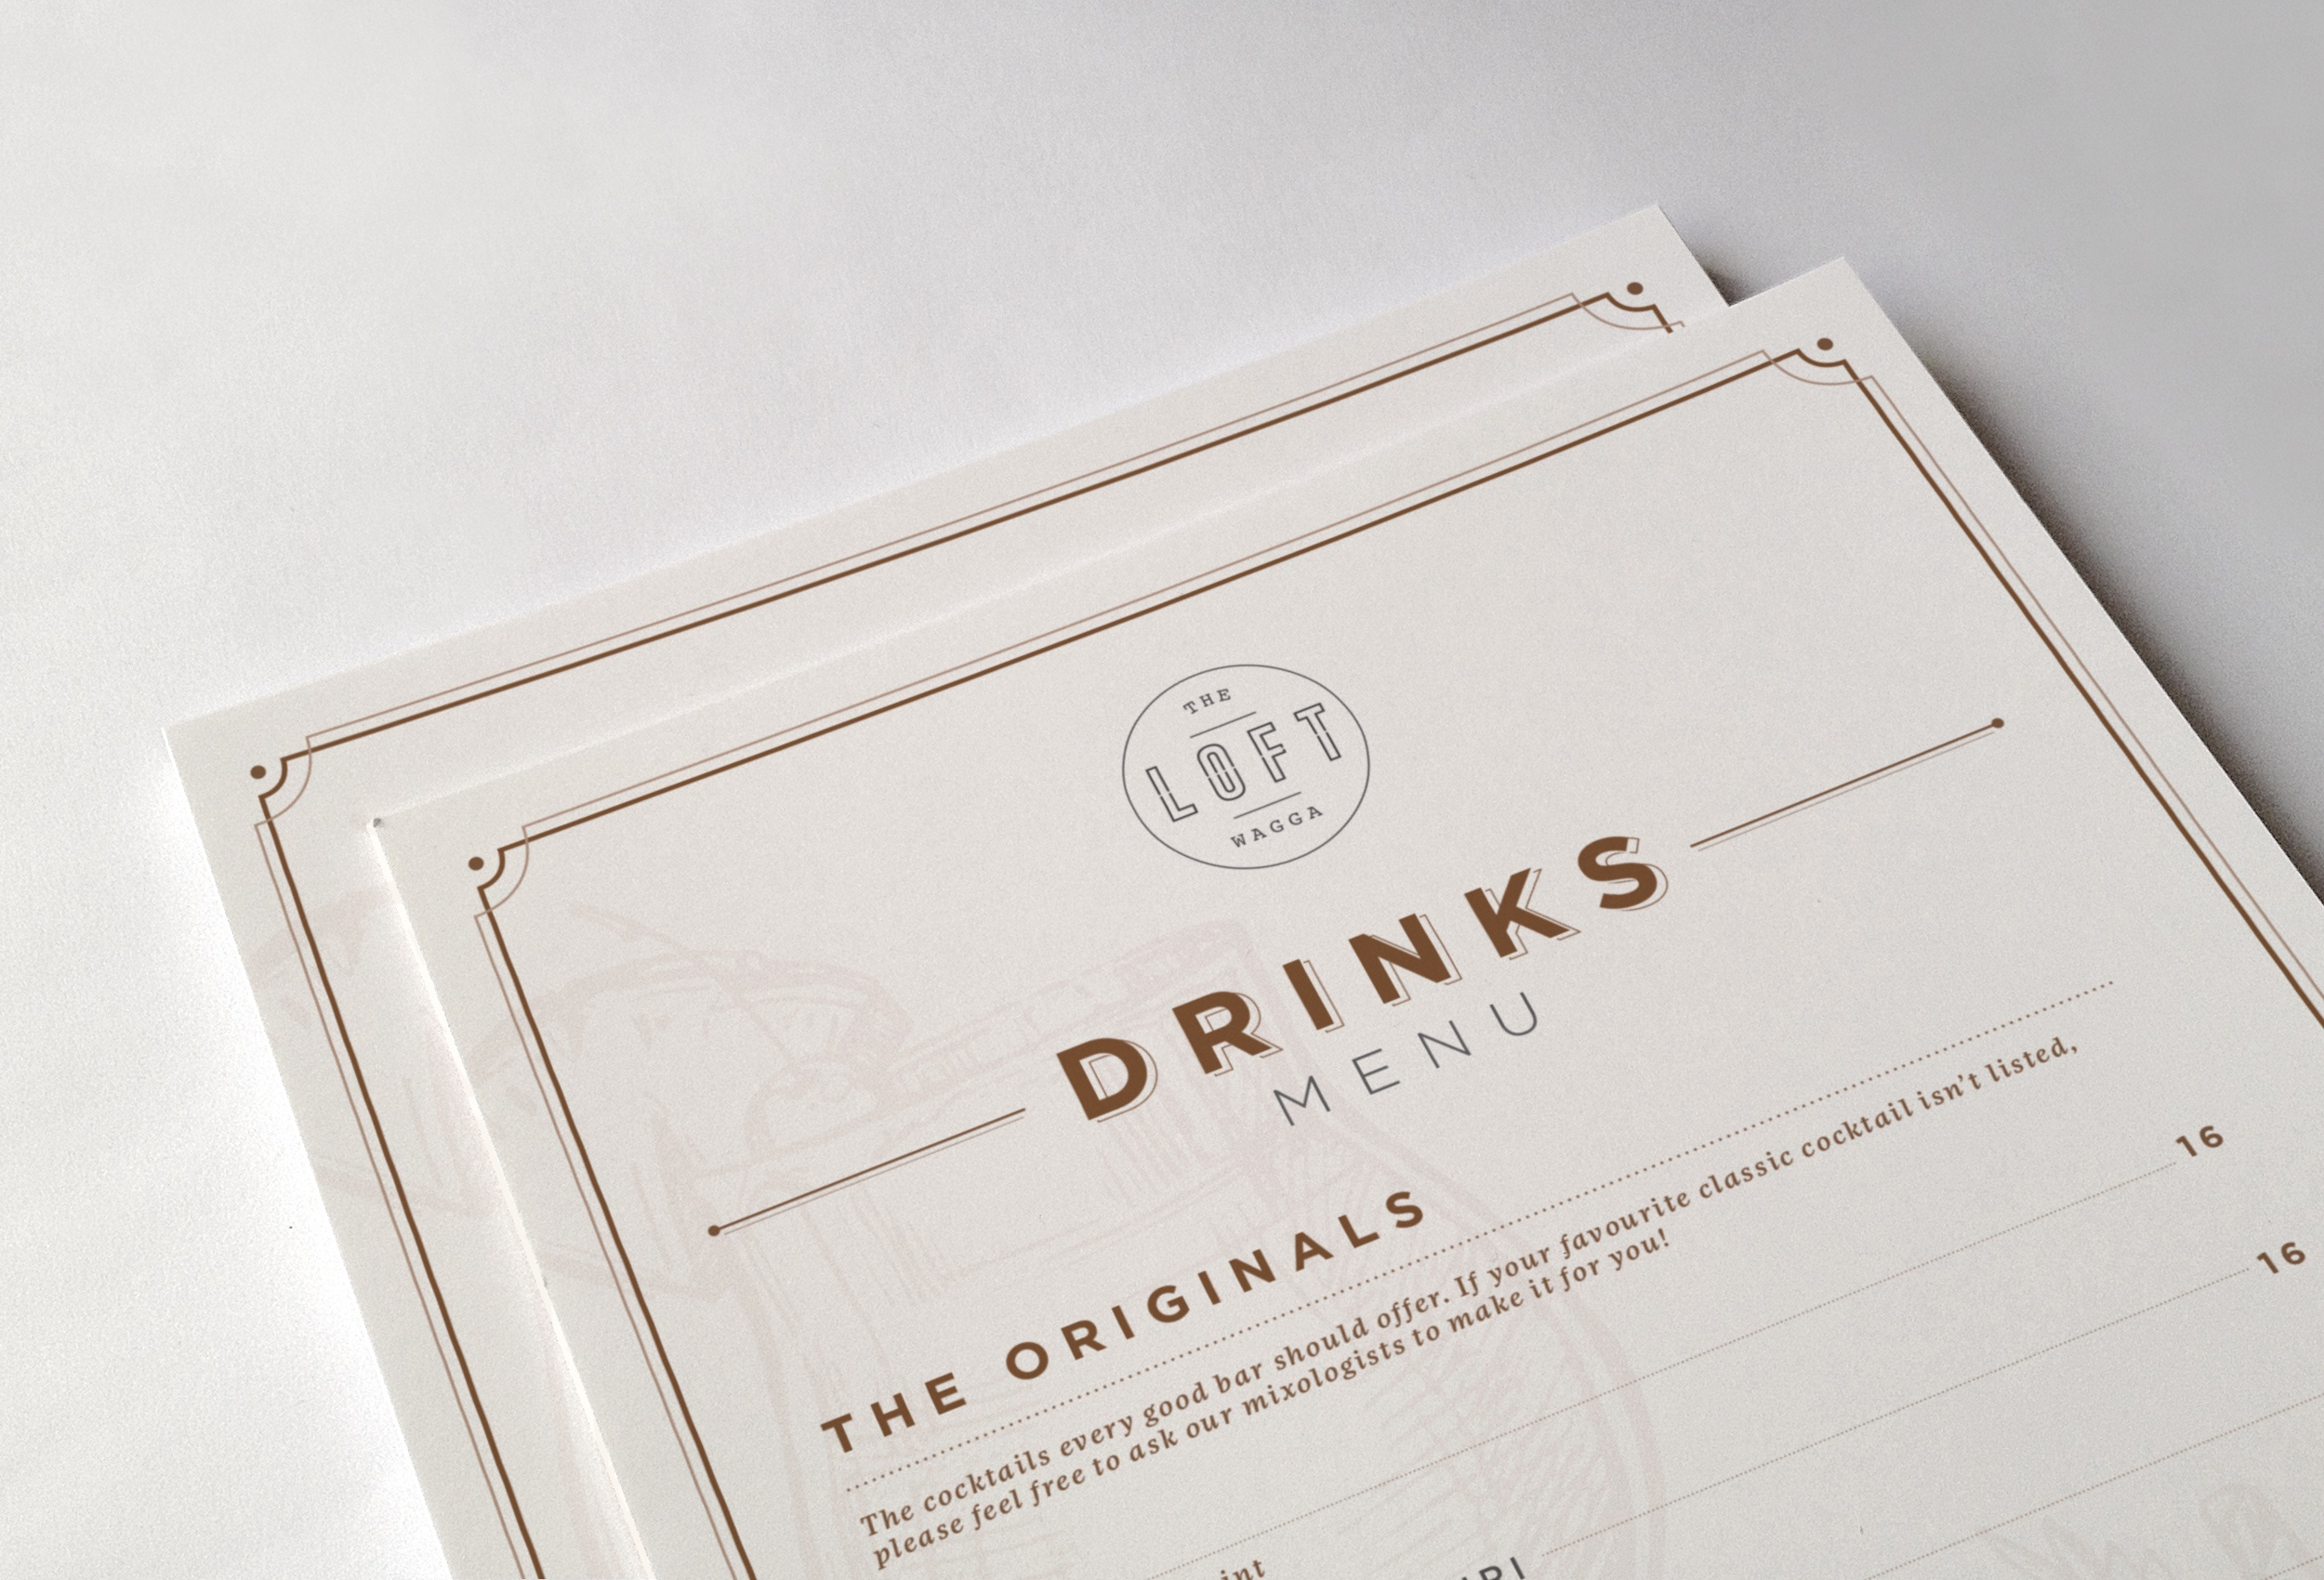 sydney-design-social-loft-wagga-menu-drinks-art-deco